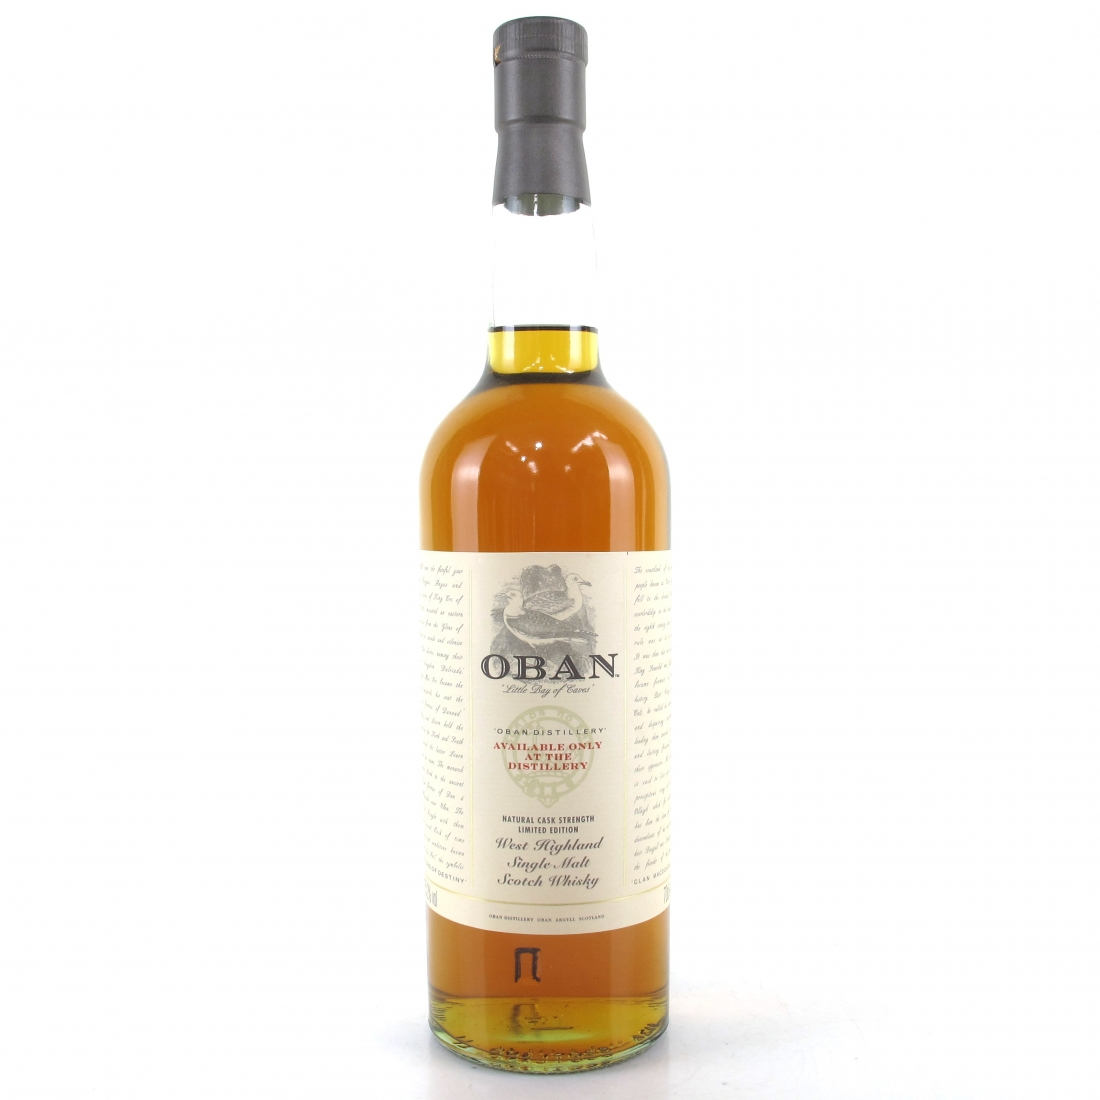 Oban Distillery Exclusive Limited Edition